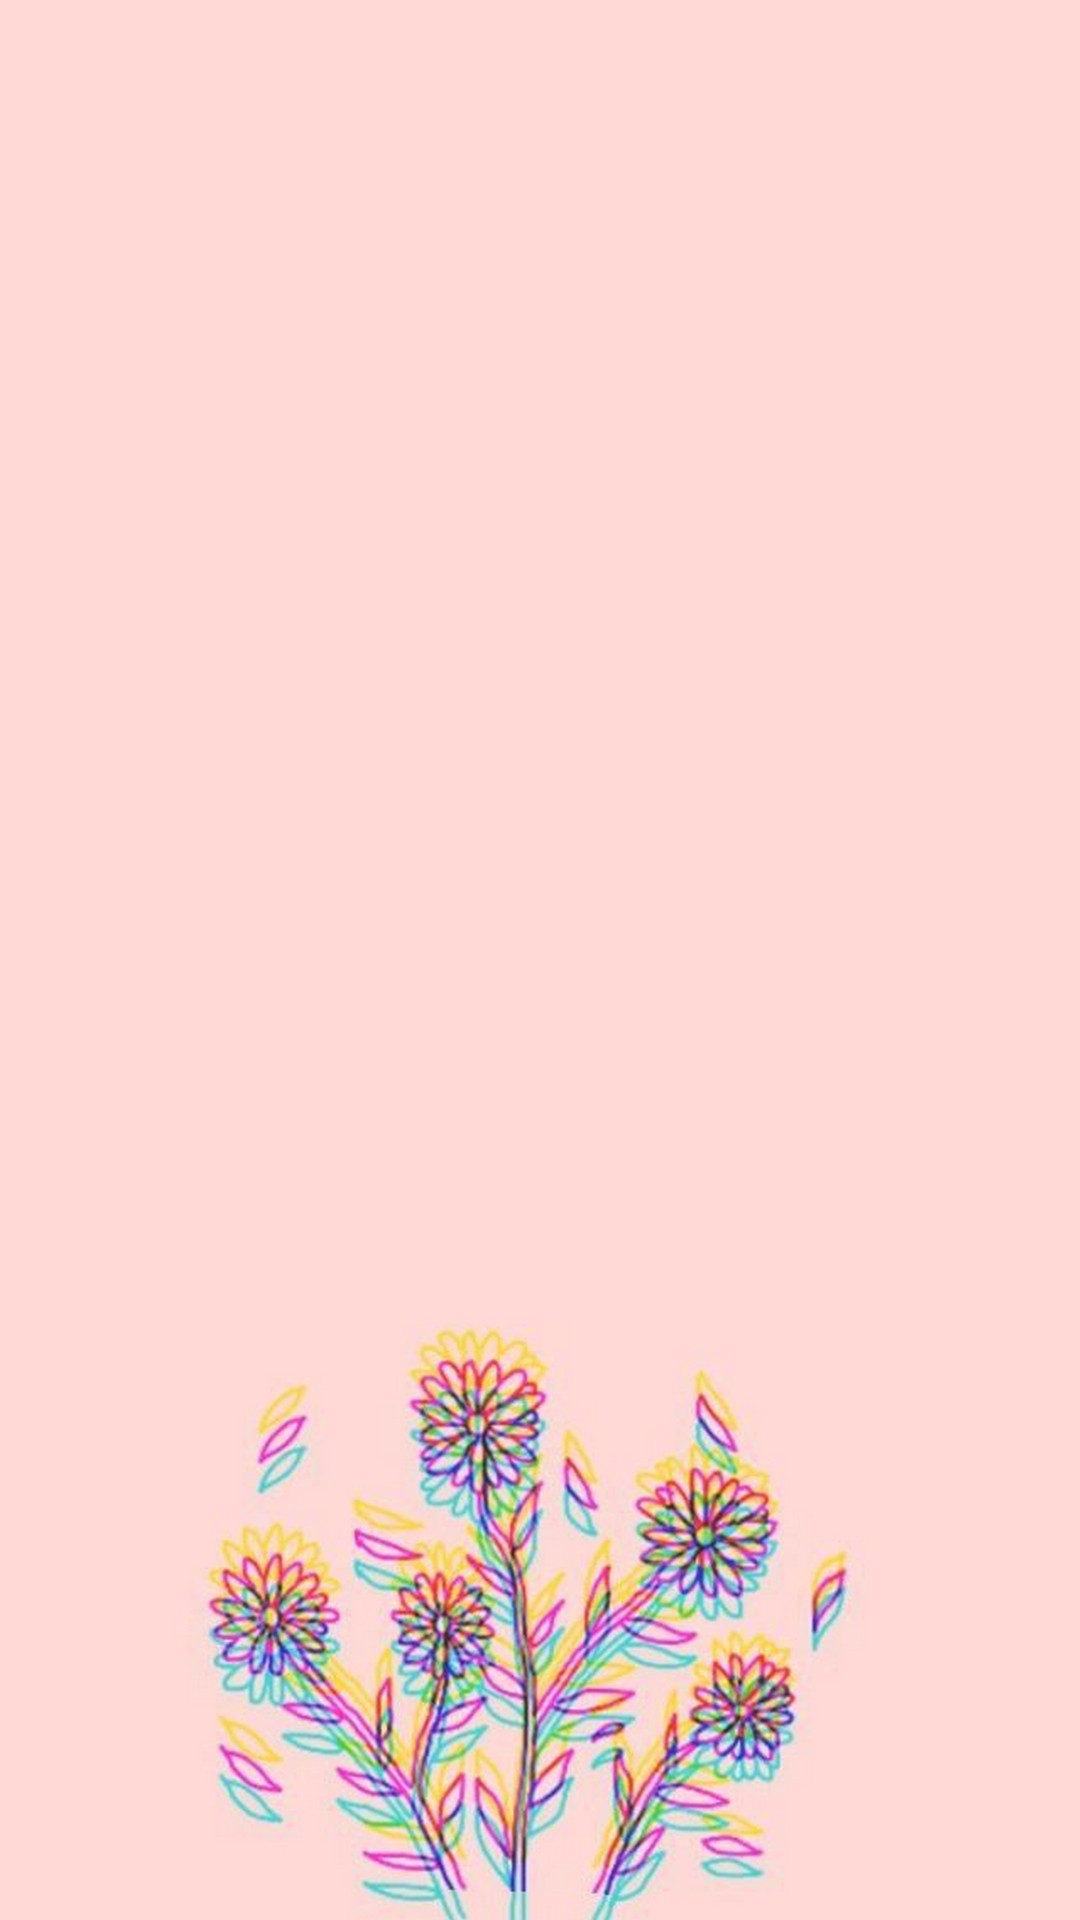 Aesthetic Backgrounds For Android   2020 Android Wallpapers 1080x1920